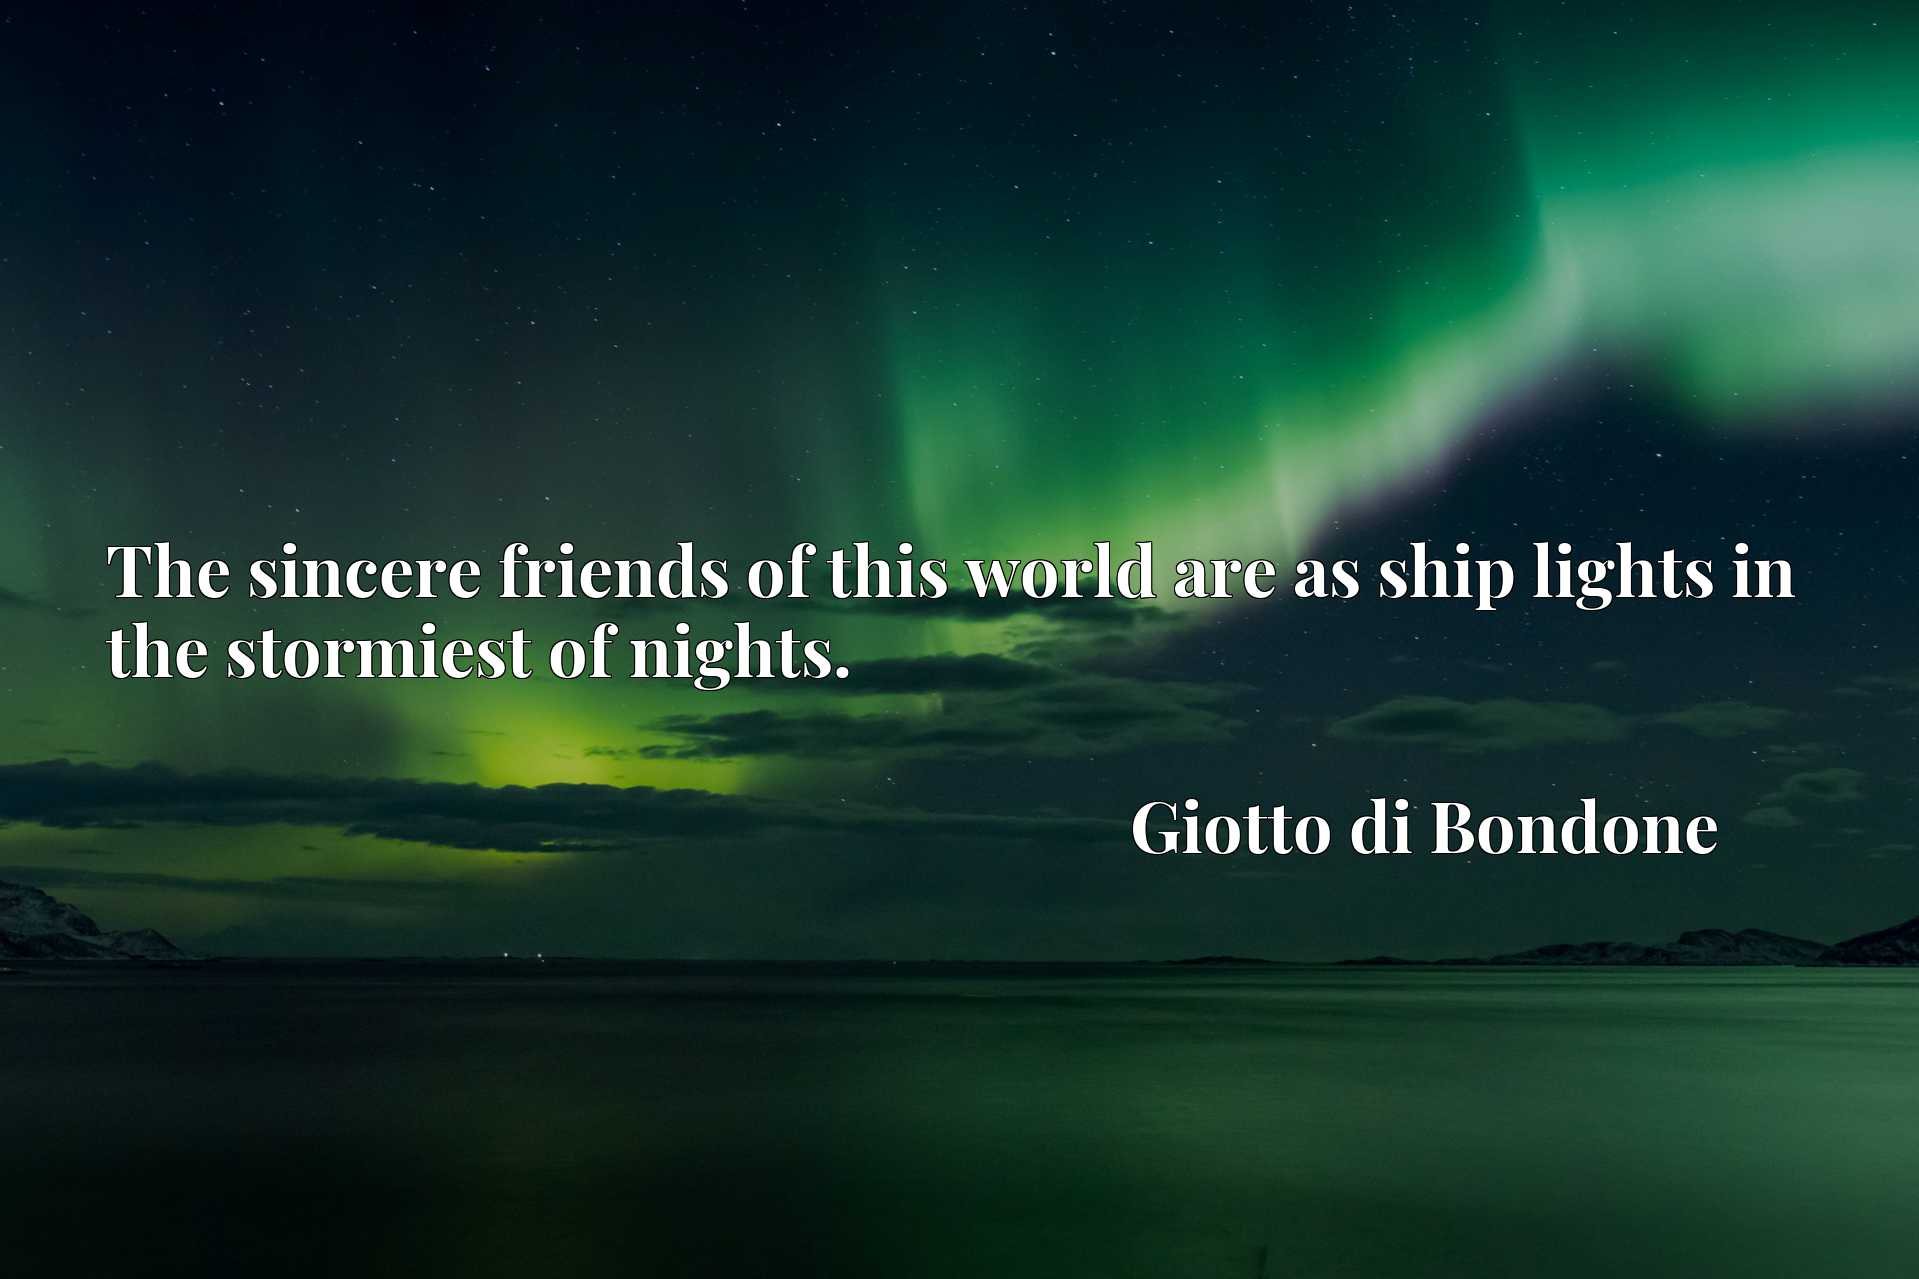 The sincere friends of this world are as ship lights in the stormiest of nights.